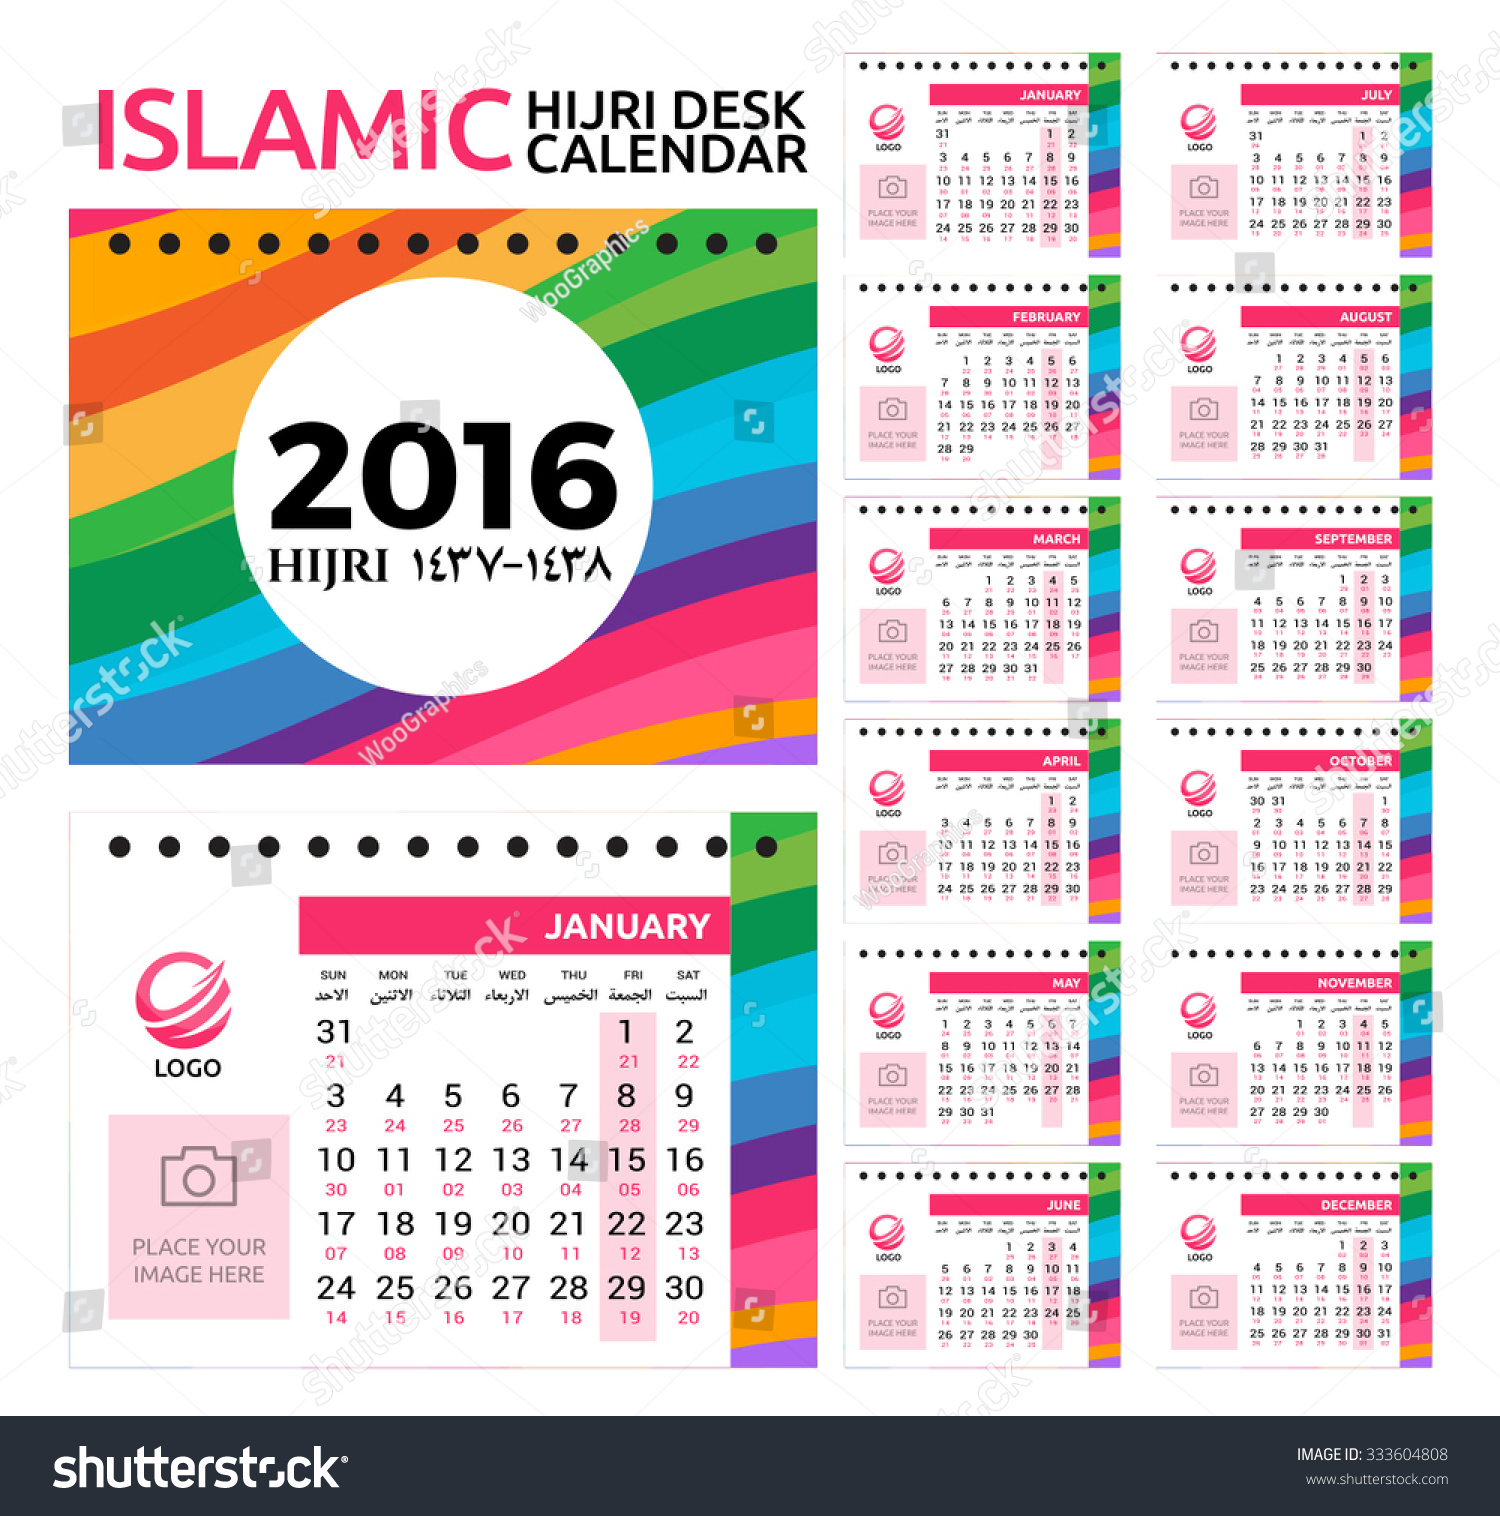 gratis nettdating islamic date today